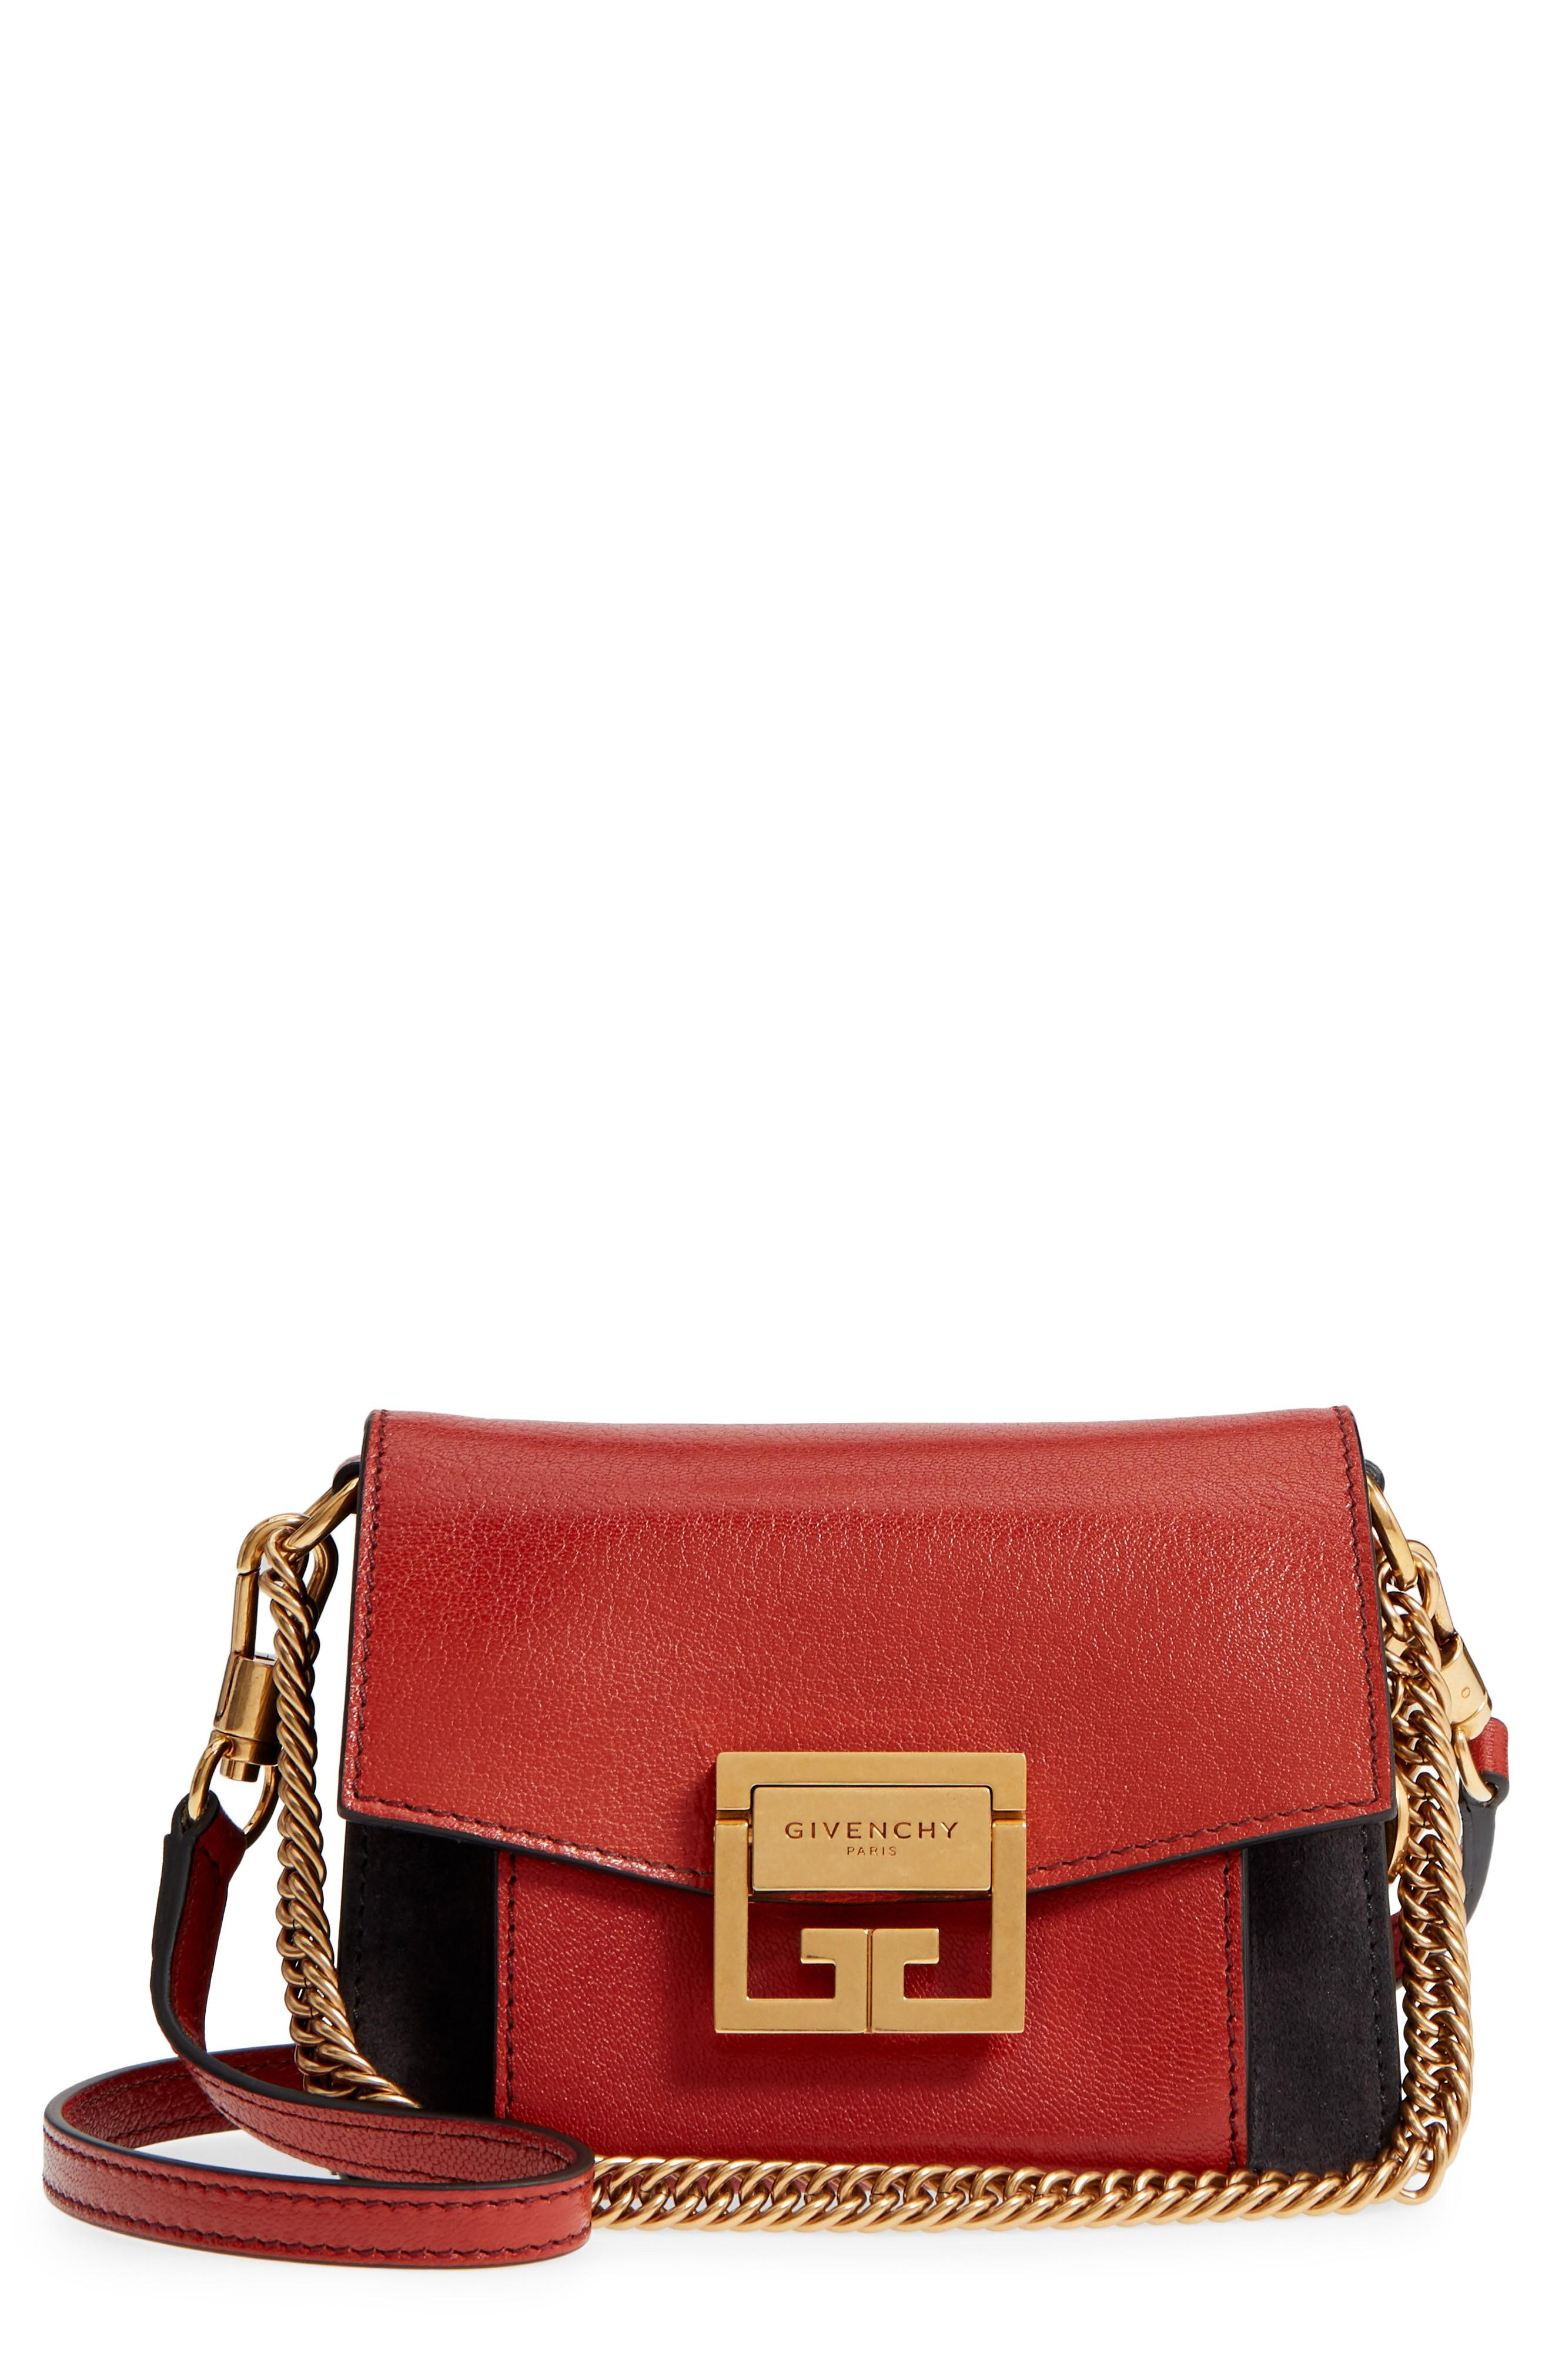 d9fd180037f8 Givenchy Mini Gv3 Leather   Suede Crossbody Bag - Red In Mahogany  Off Black